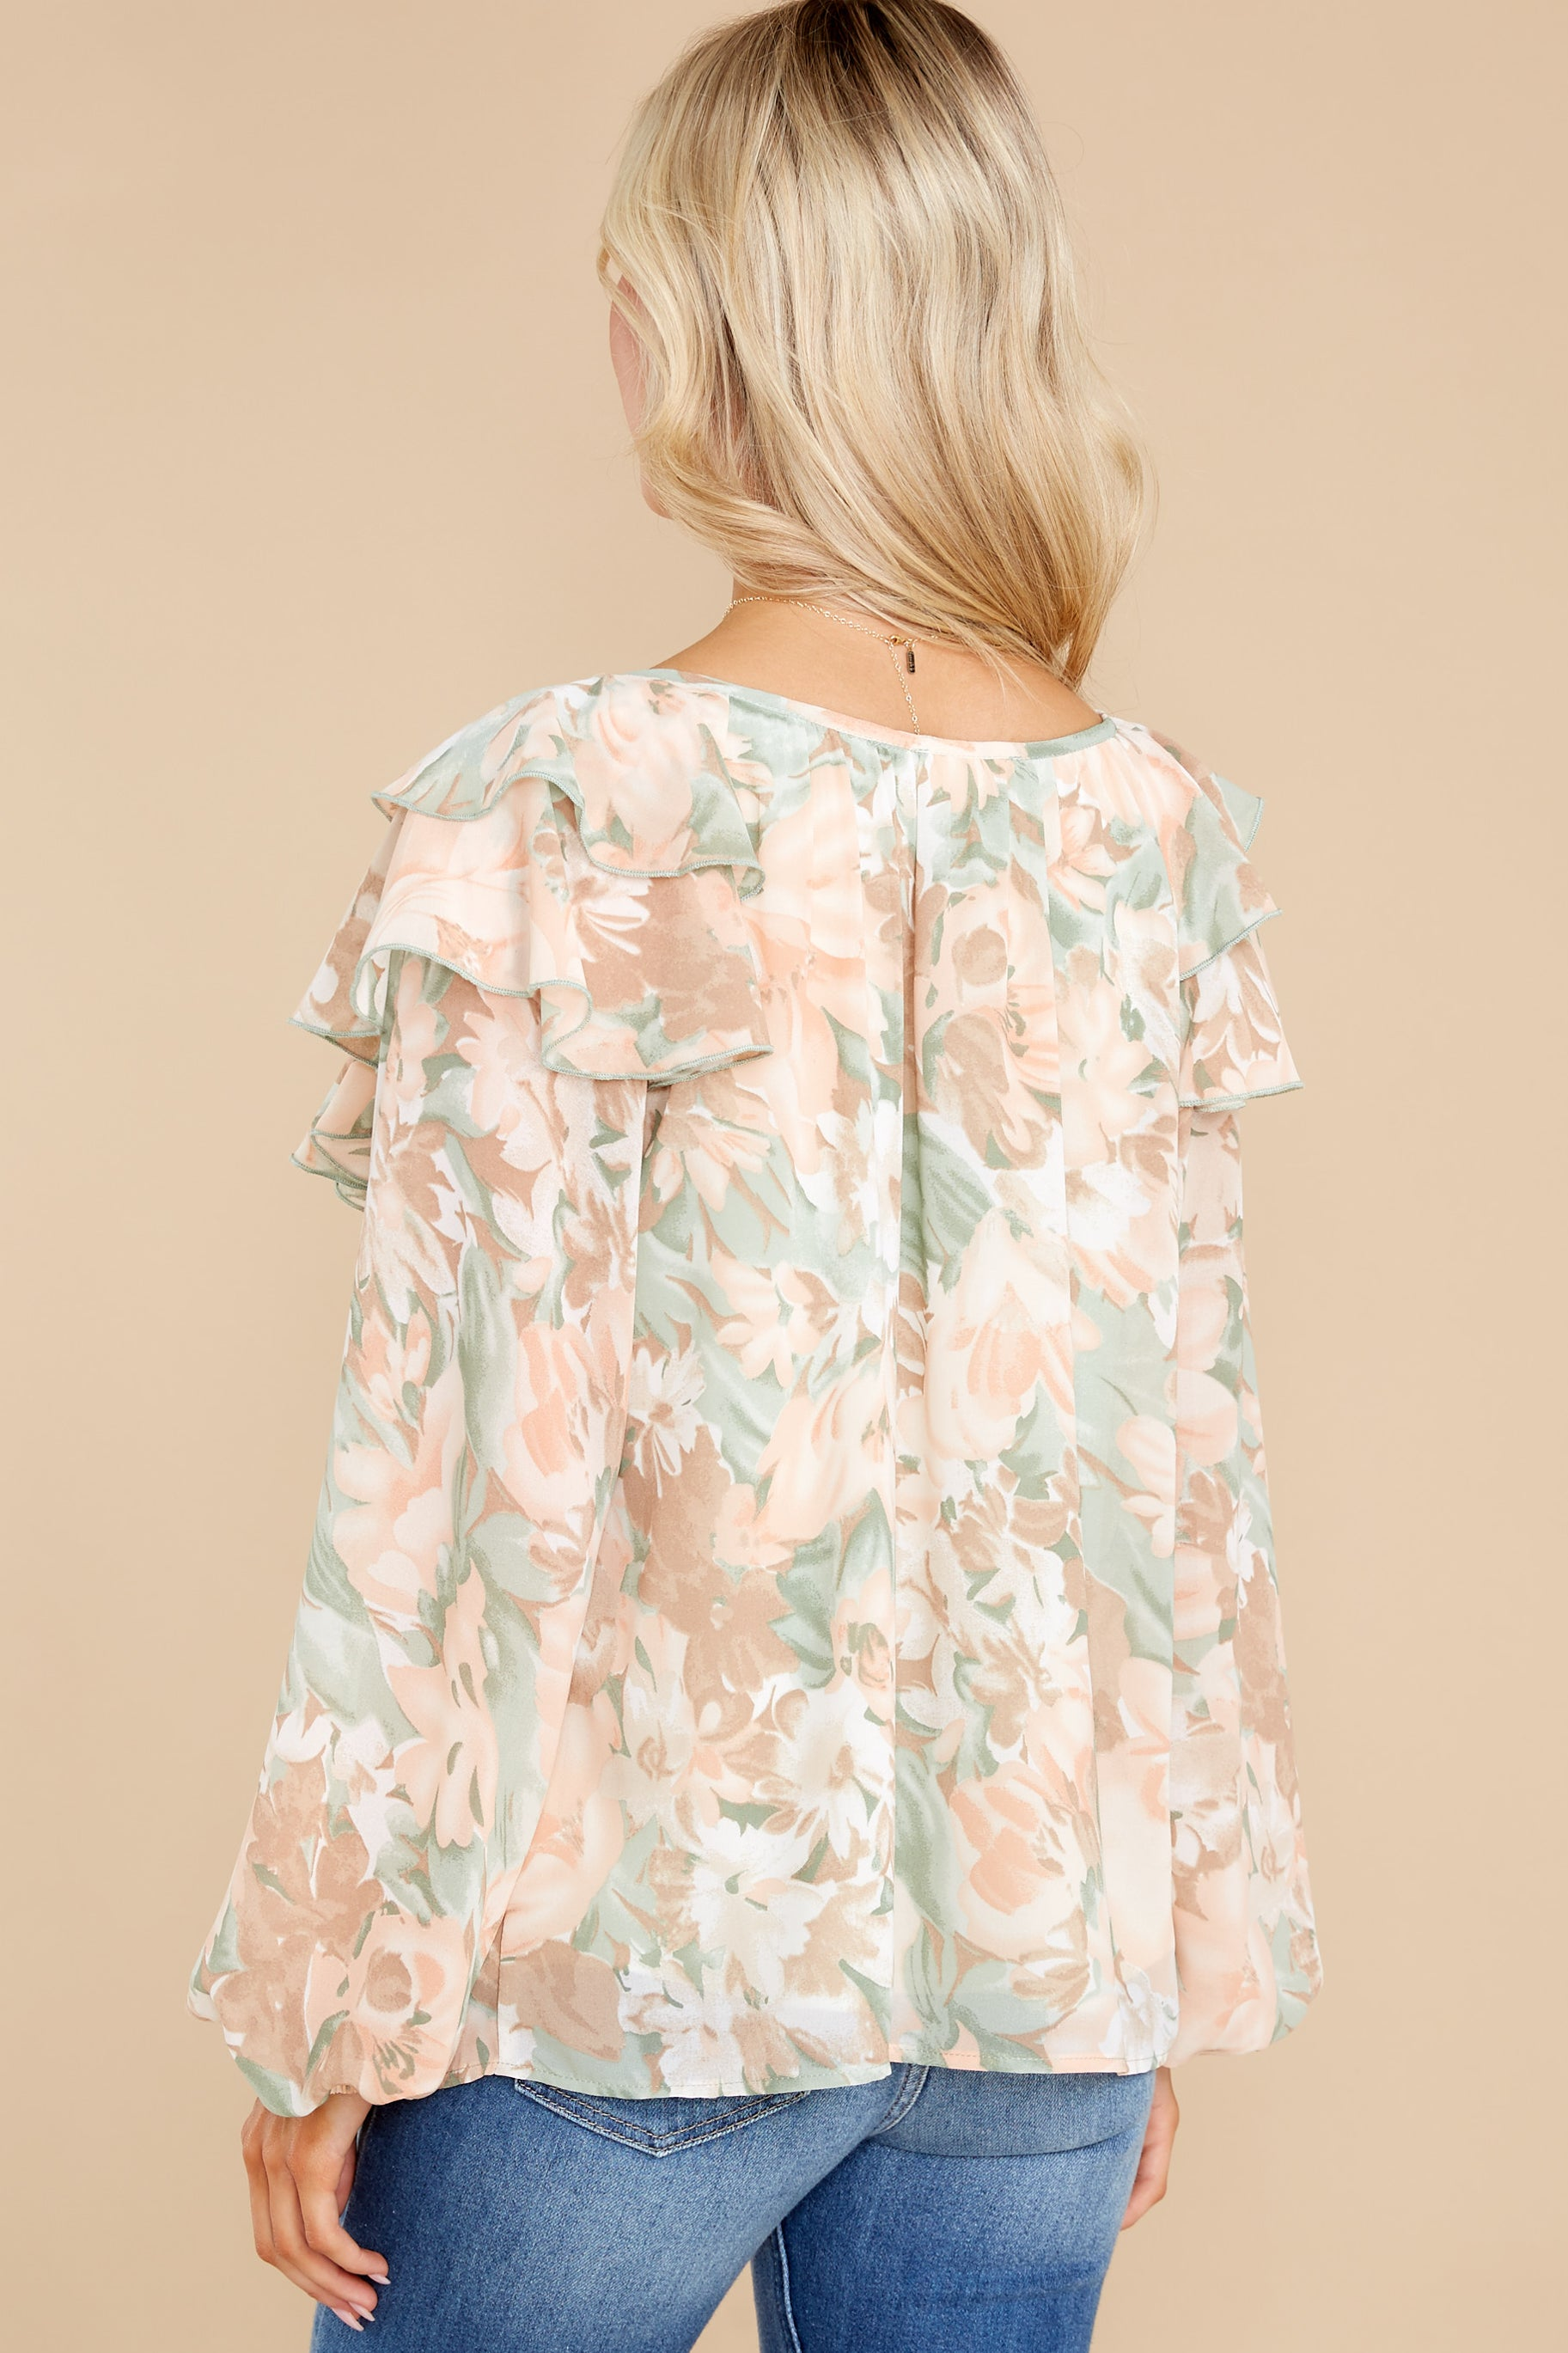 9 Wisteria Meadows Apricot And Sage Floral Print Top at reddress.com